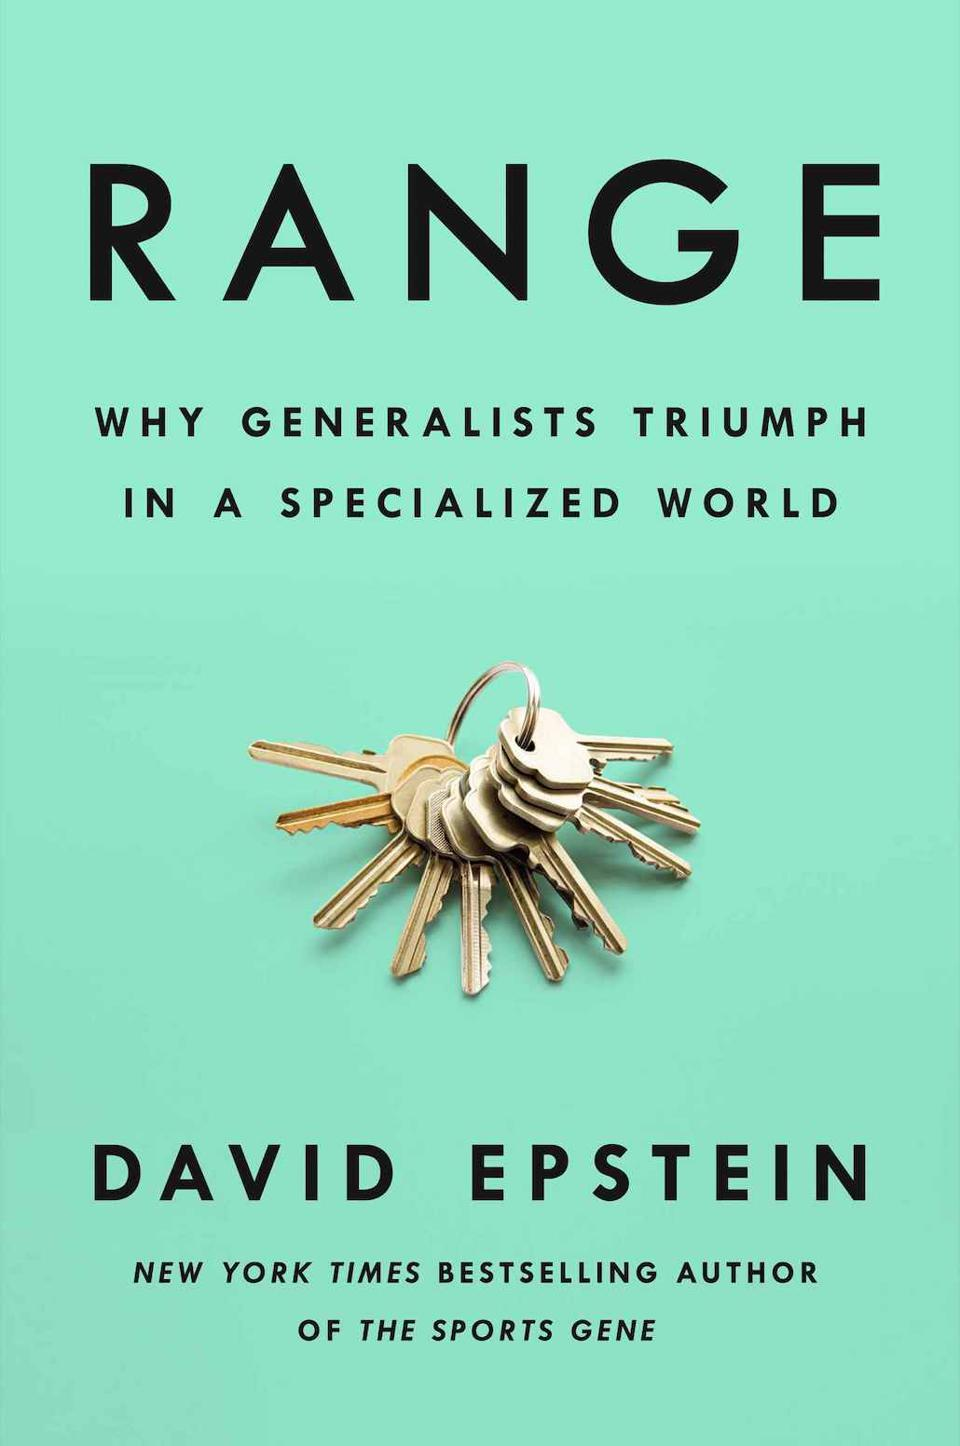 Range: Why Generalists Triumph in a Specialized World by David J. Epstein